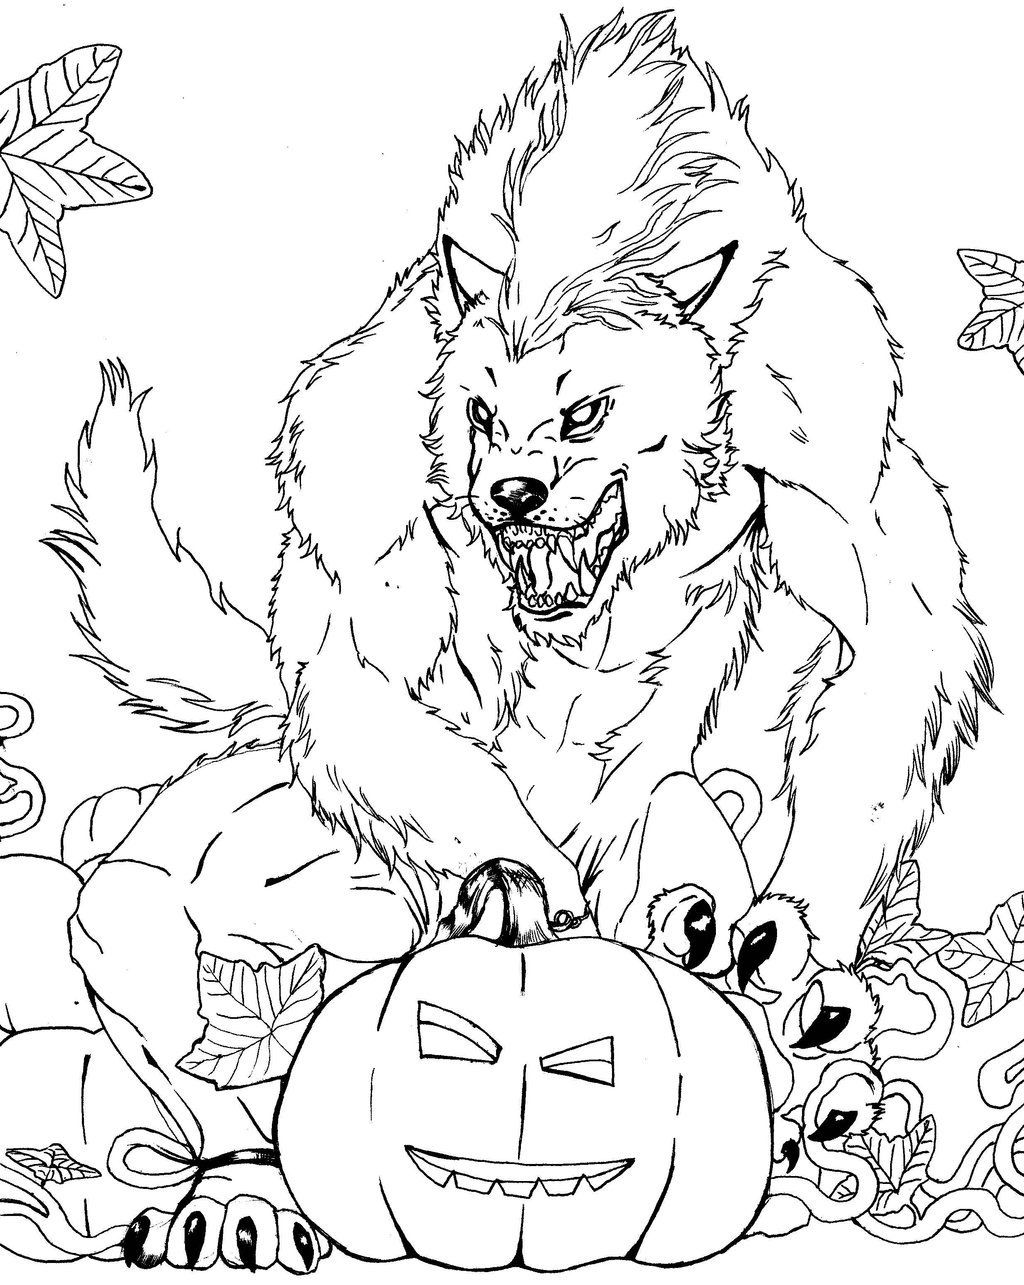 Free Werewolf Coloring Page With Images Monster Coloring Pages